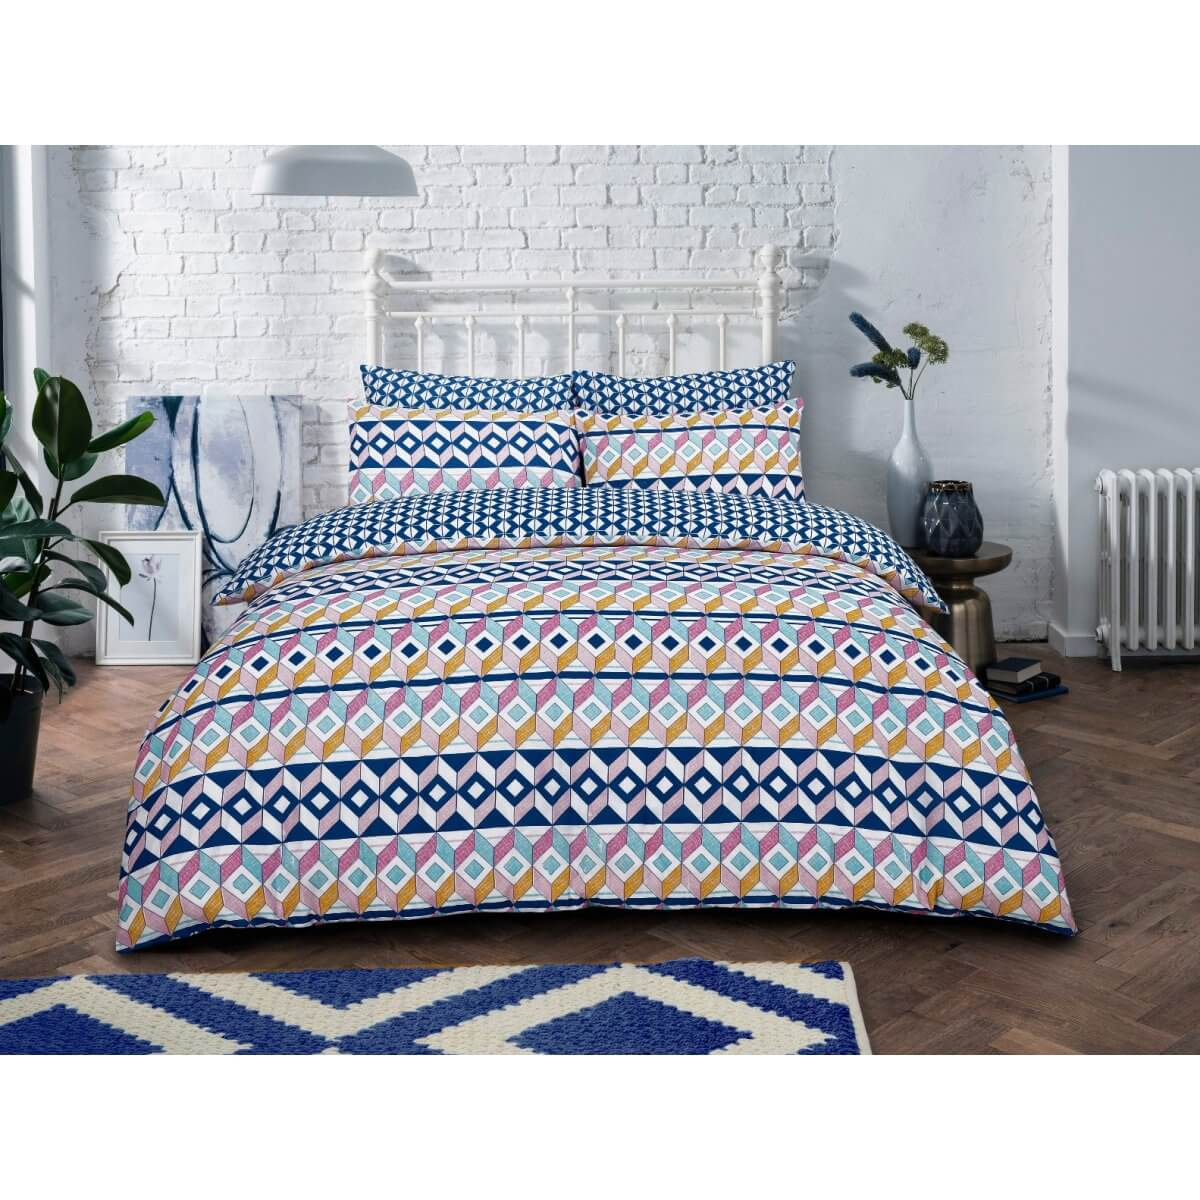 Geometric Stripes Brights Bedding - Reversible Duvet Cover and Pillowcase Set